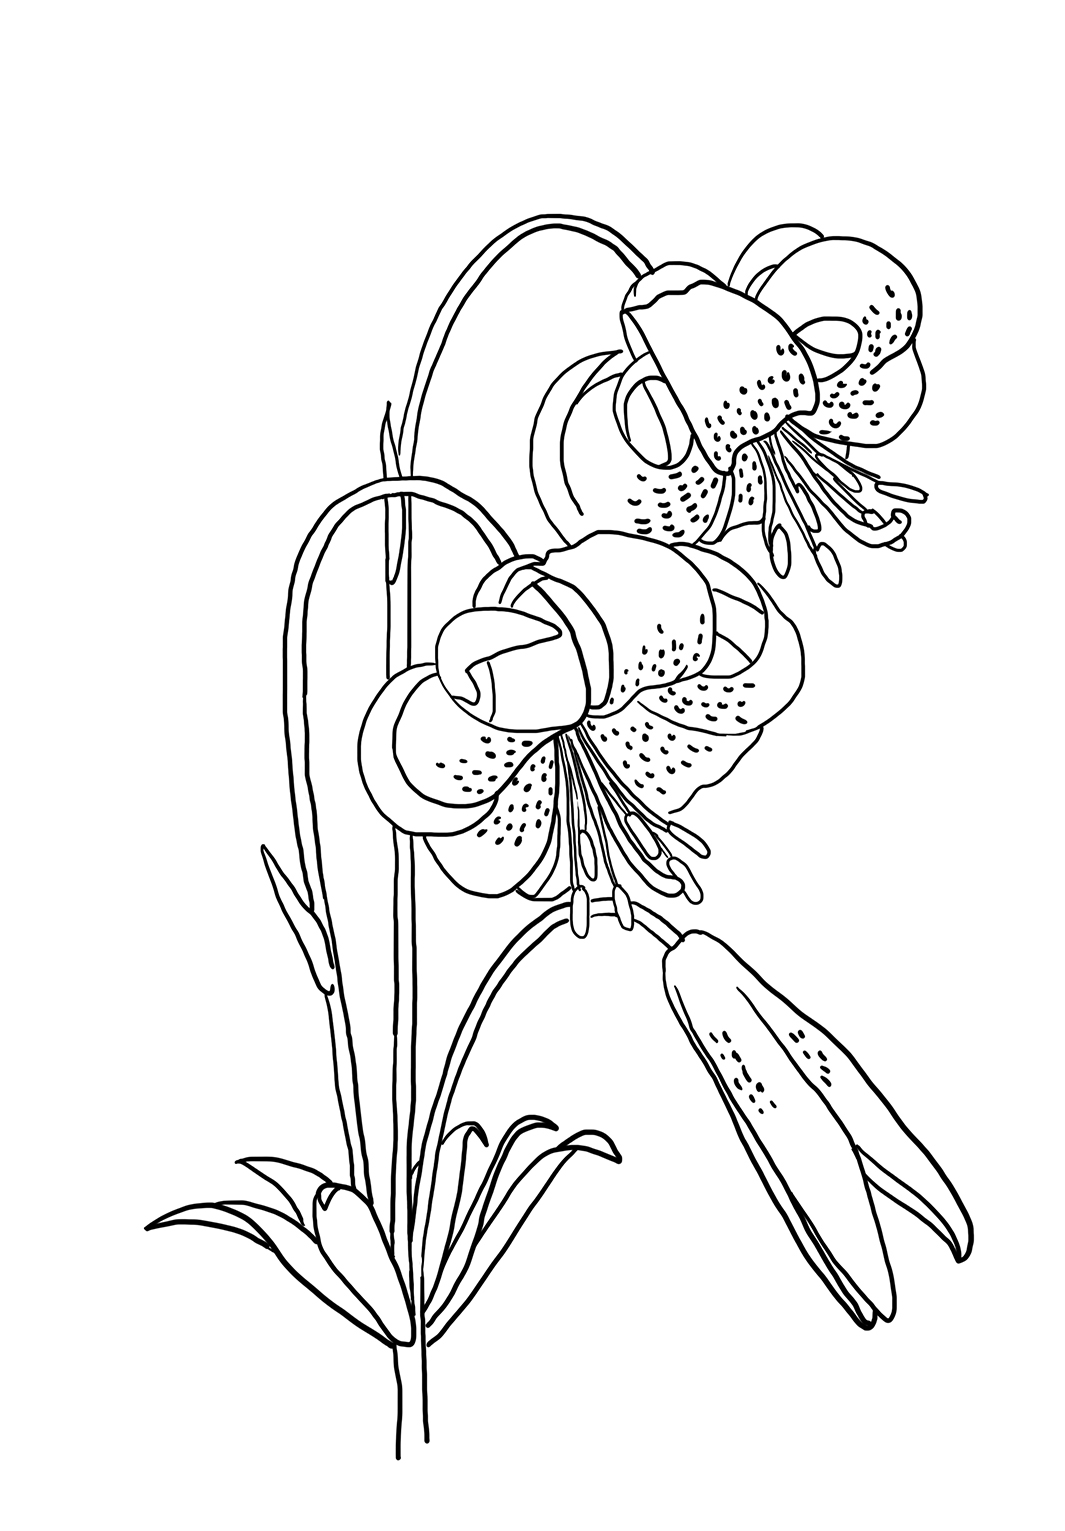 coloring image of a flower flower coloring pages of a flower image coloring